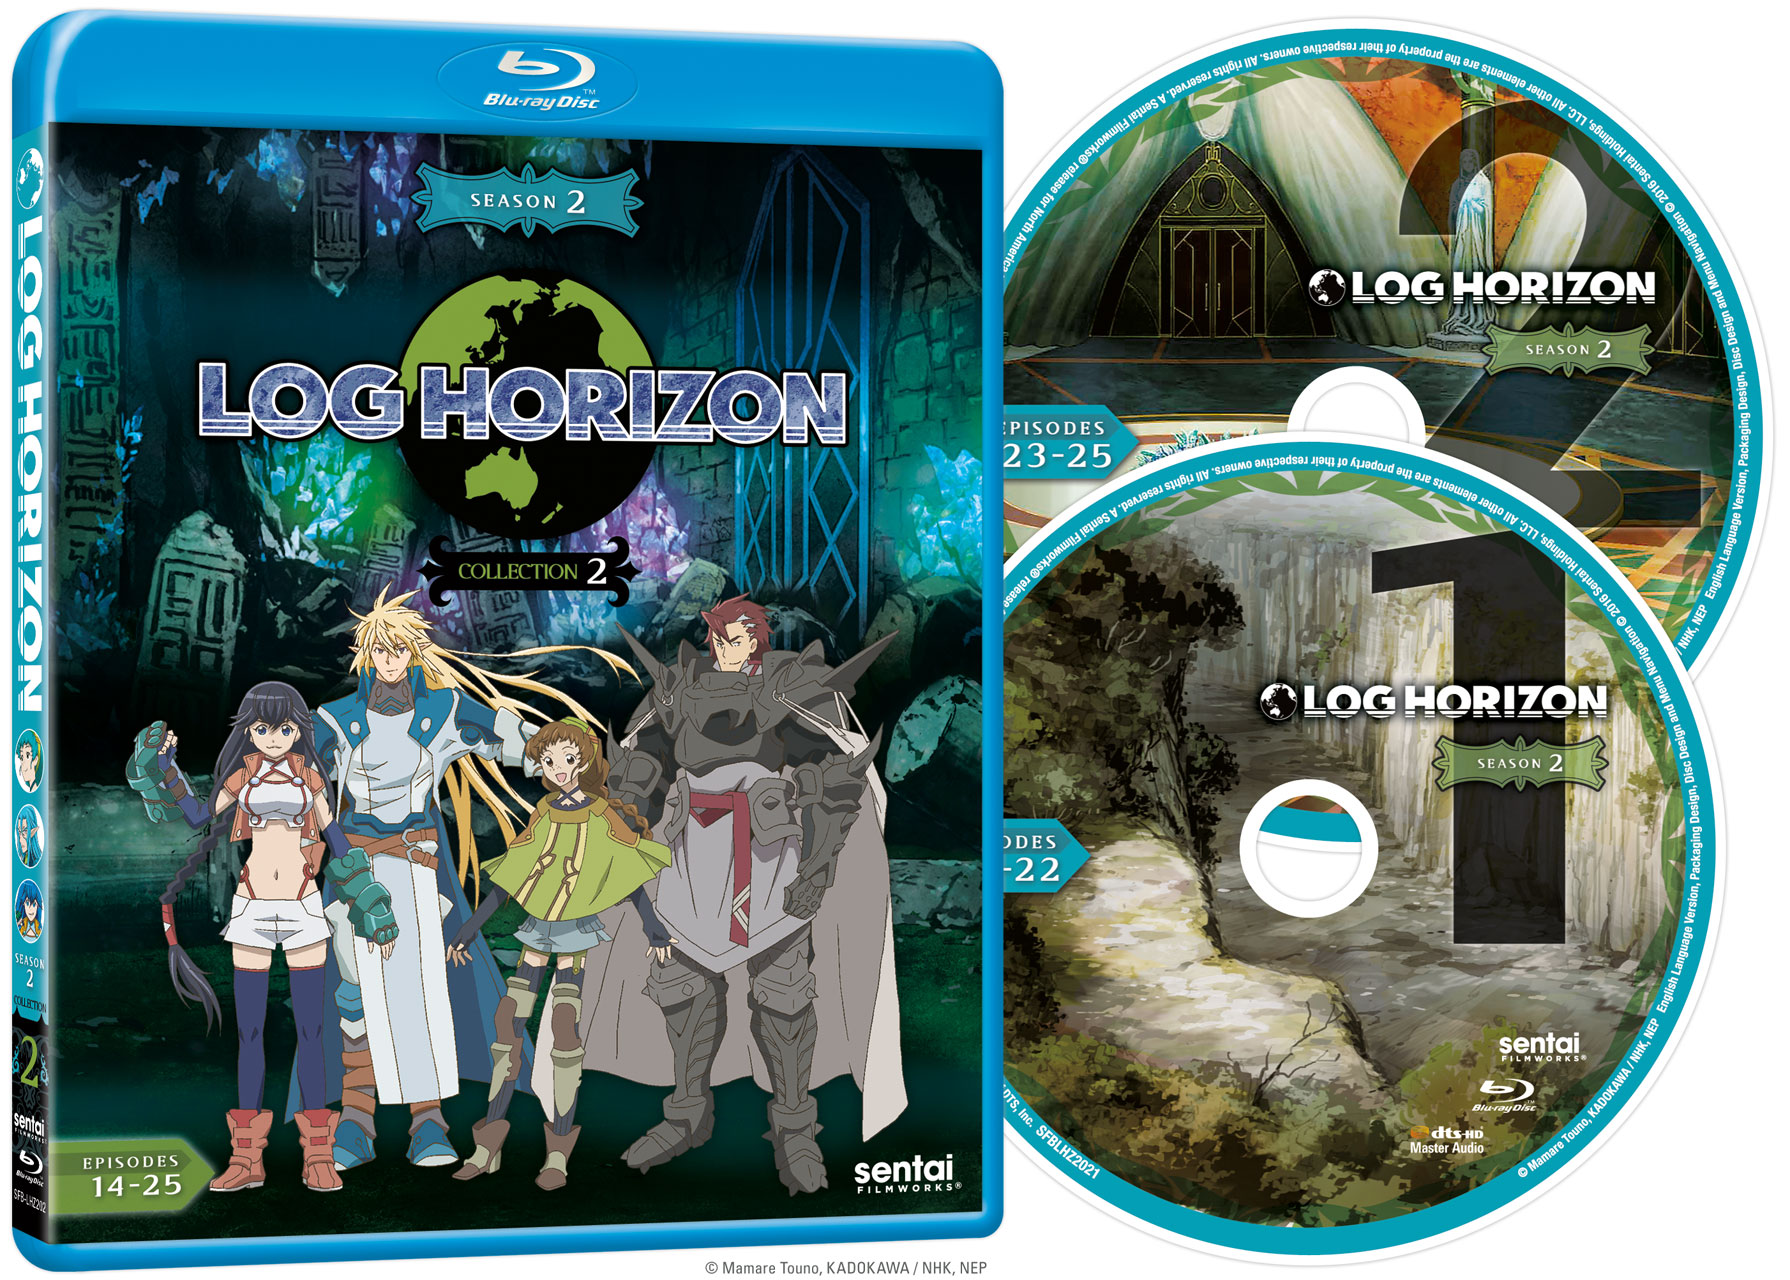 Log Horizon 2 Collection 2 Blu-ray